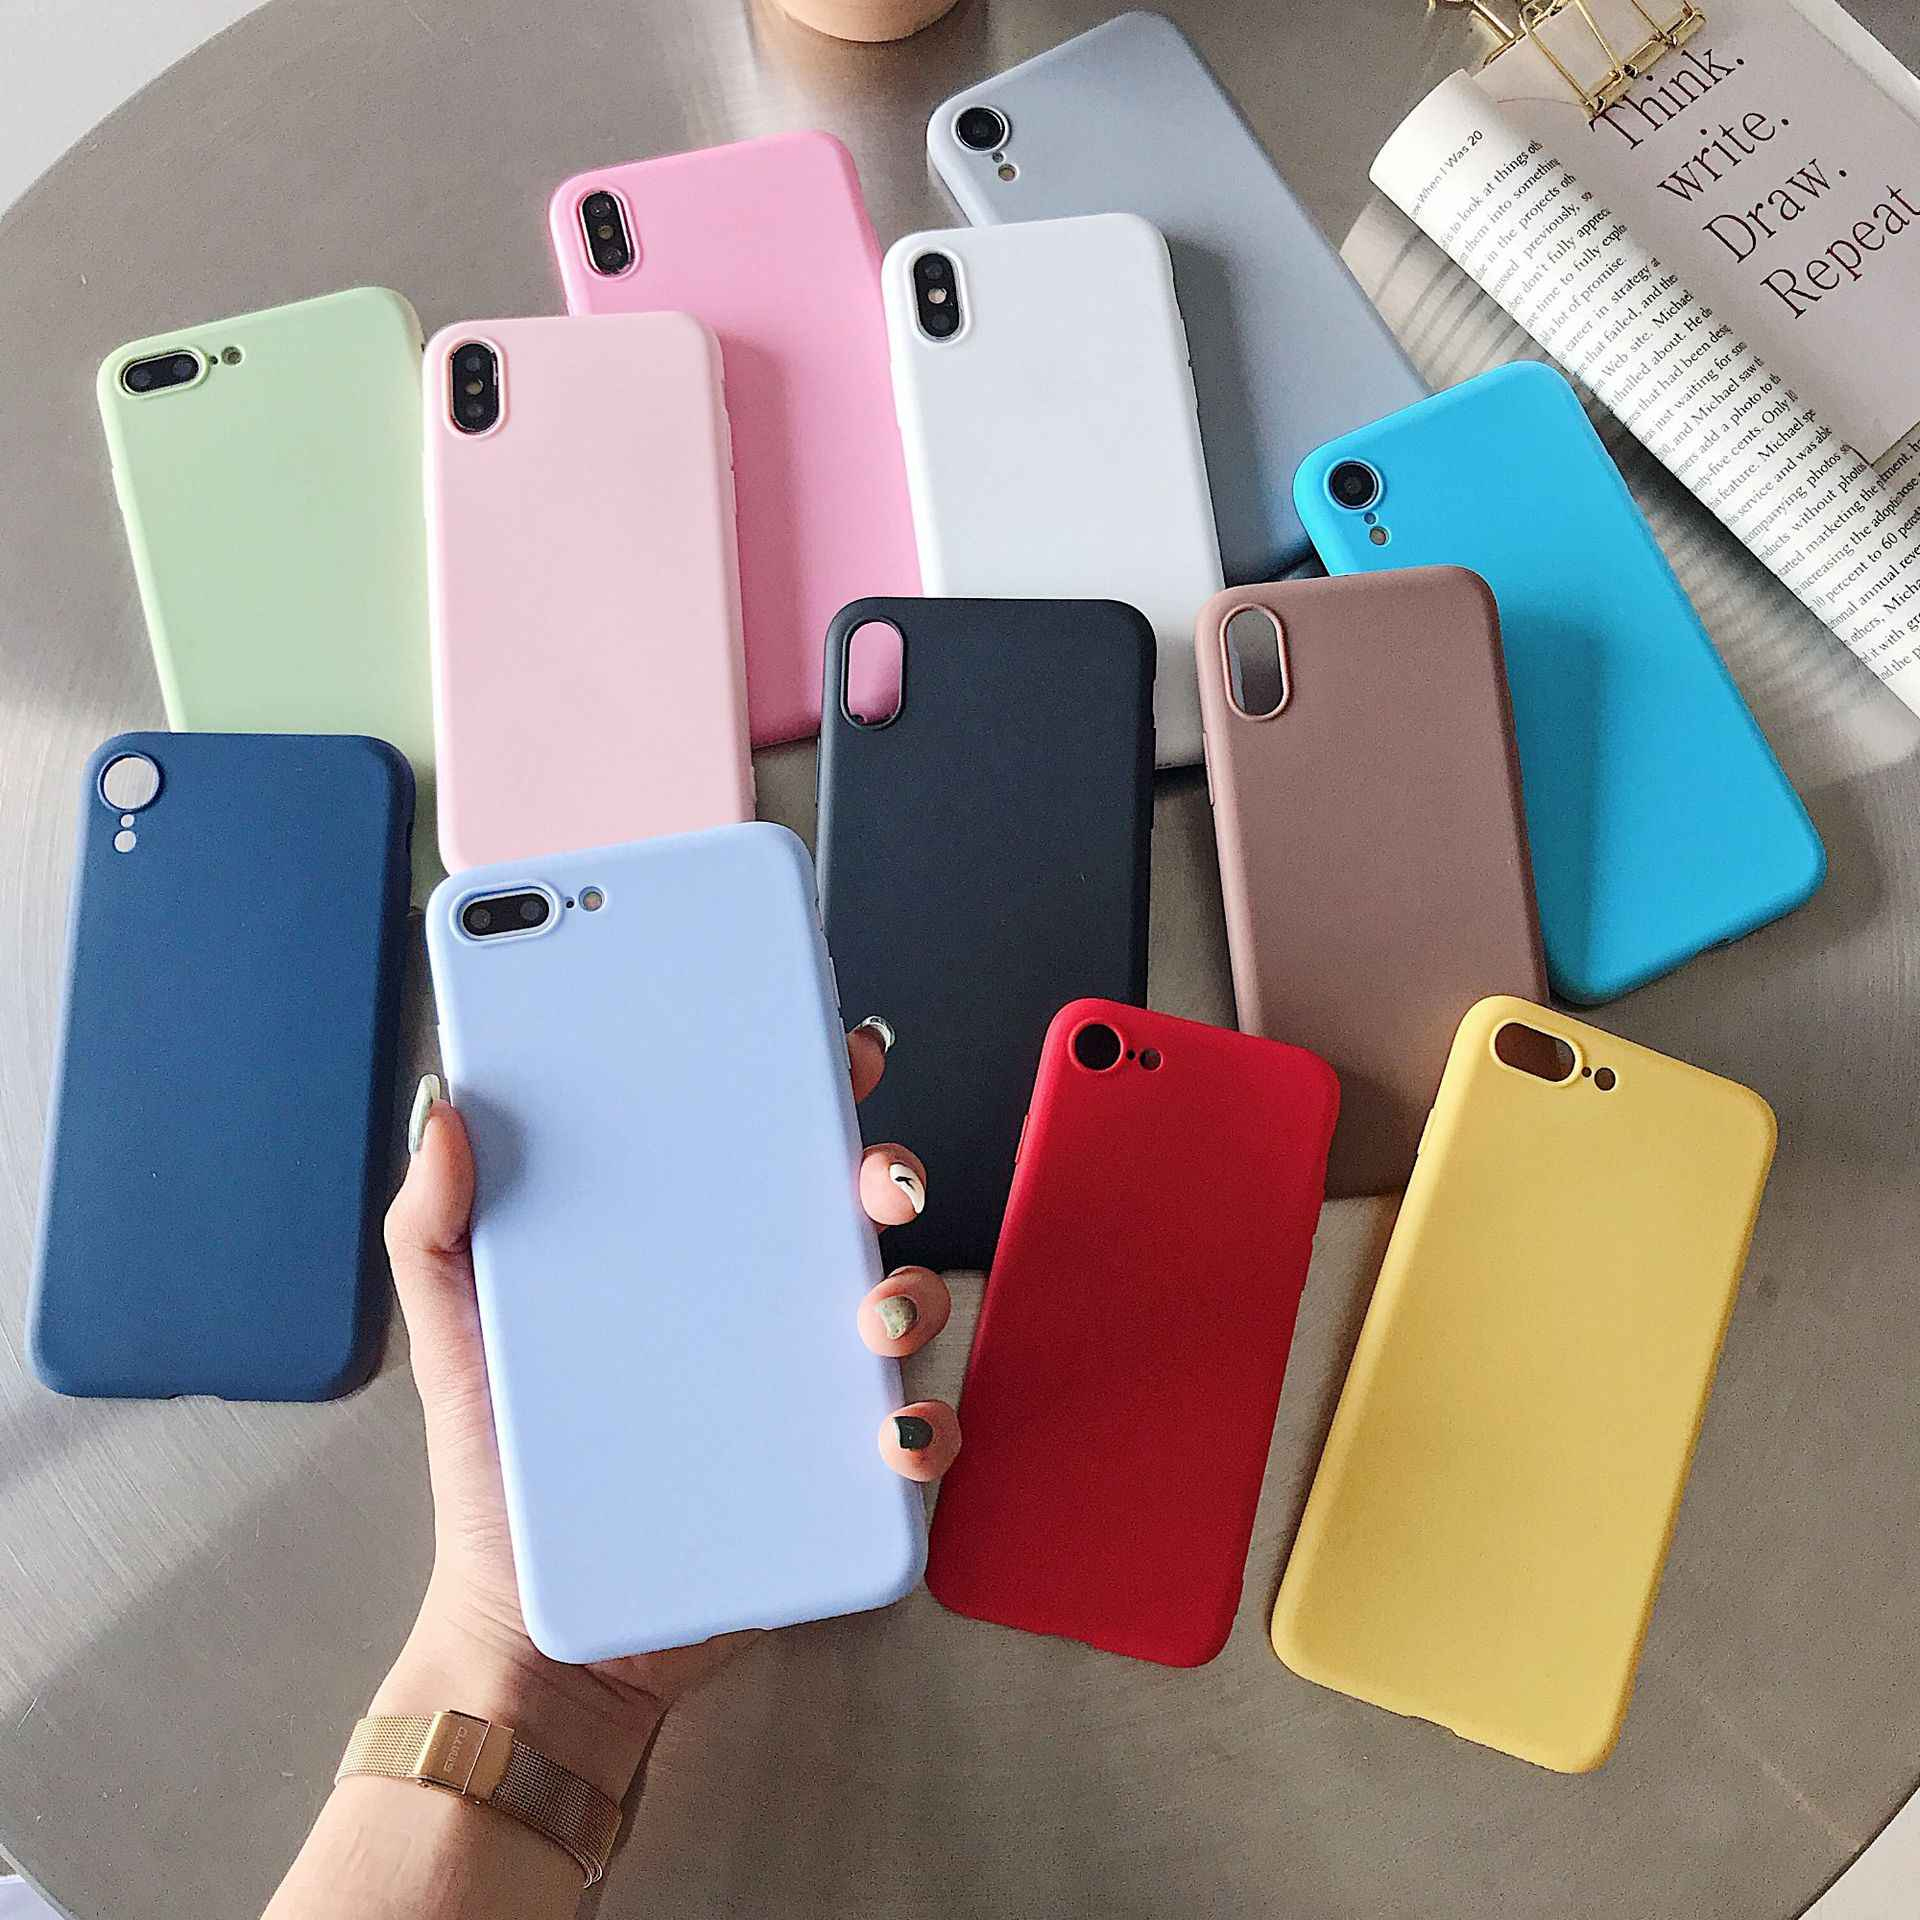 Candy Color TPU Case for Samsung Galaxy A20E A10E S10E A7 2018 A750 A8S A10 A20 A30 A40S A50 A60 A70 M10 M20 M30 A2 Core Cover